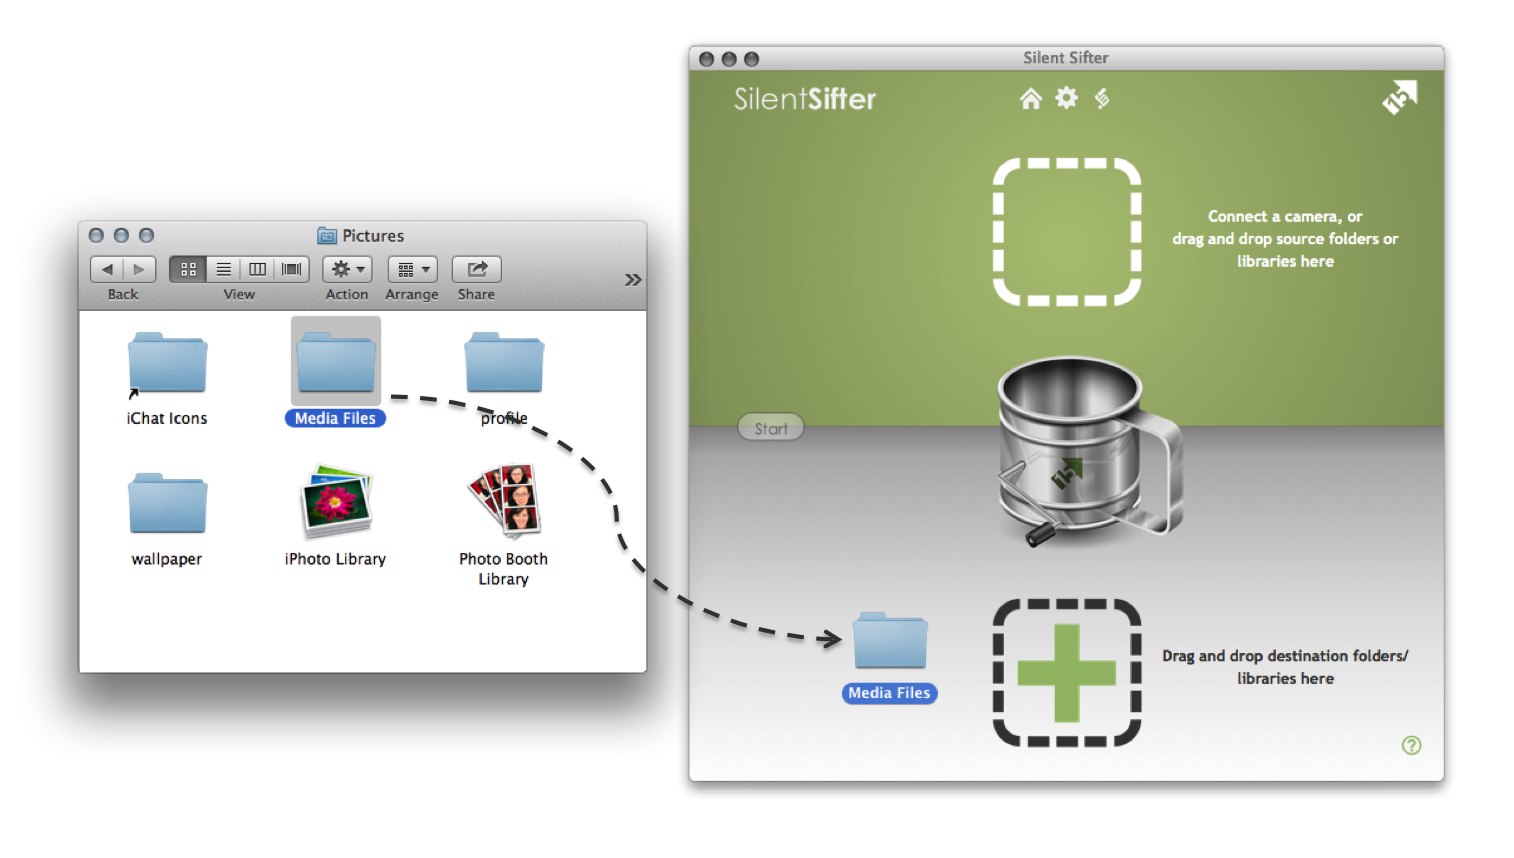 Vector 15 – Silent Sifter User Guide